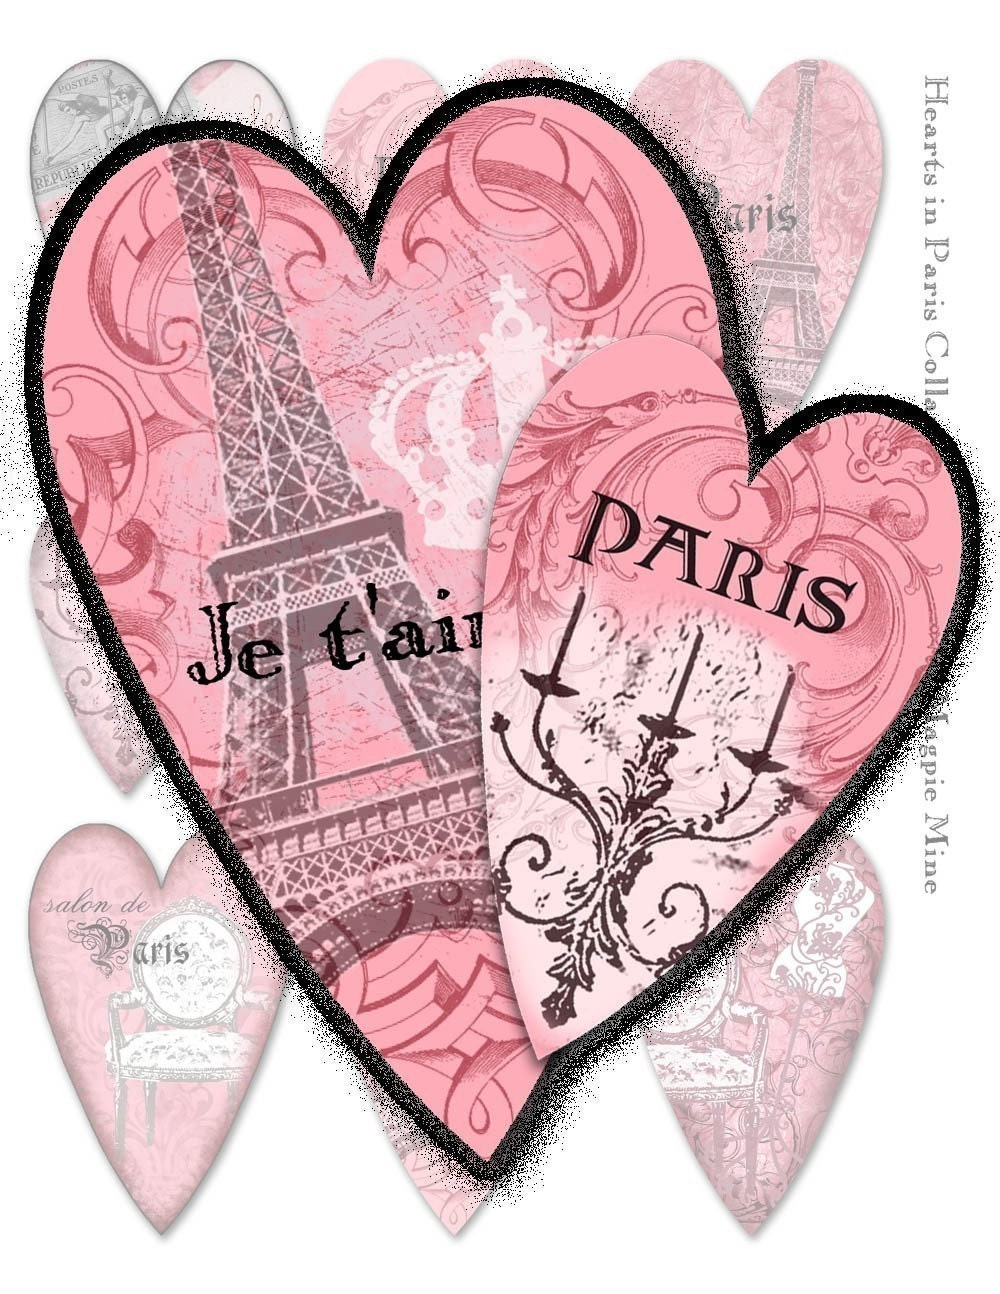 Paris Hearts Collage Sheet - Perfect for Valentines - Digital Download - Pink Black and White Shabby Chic